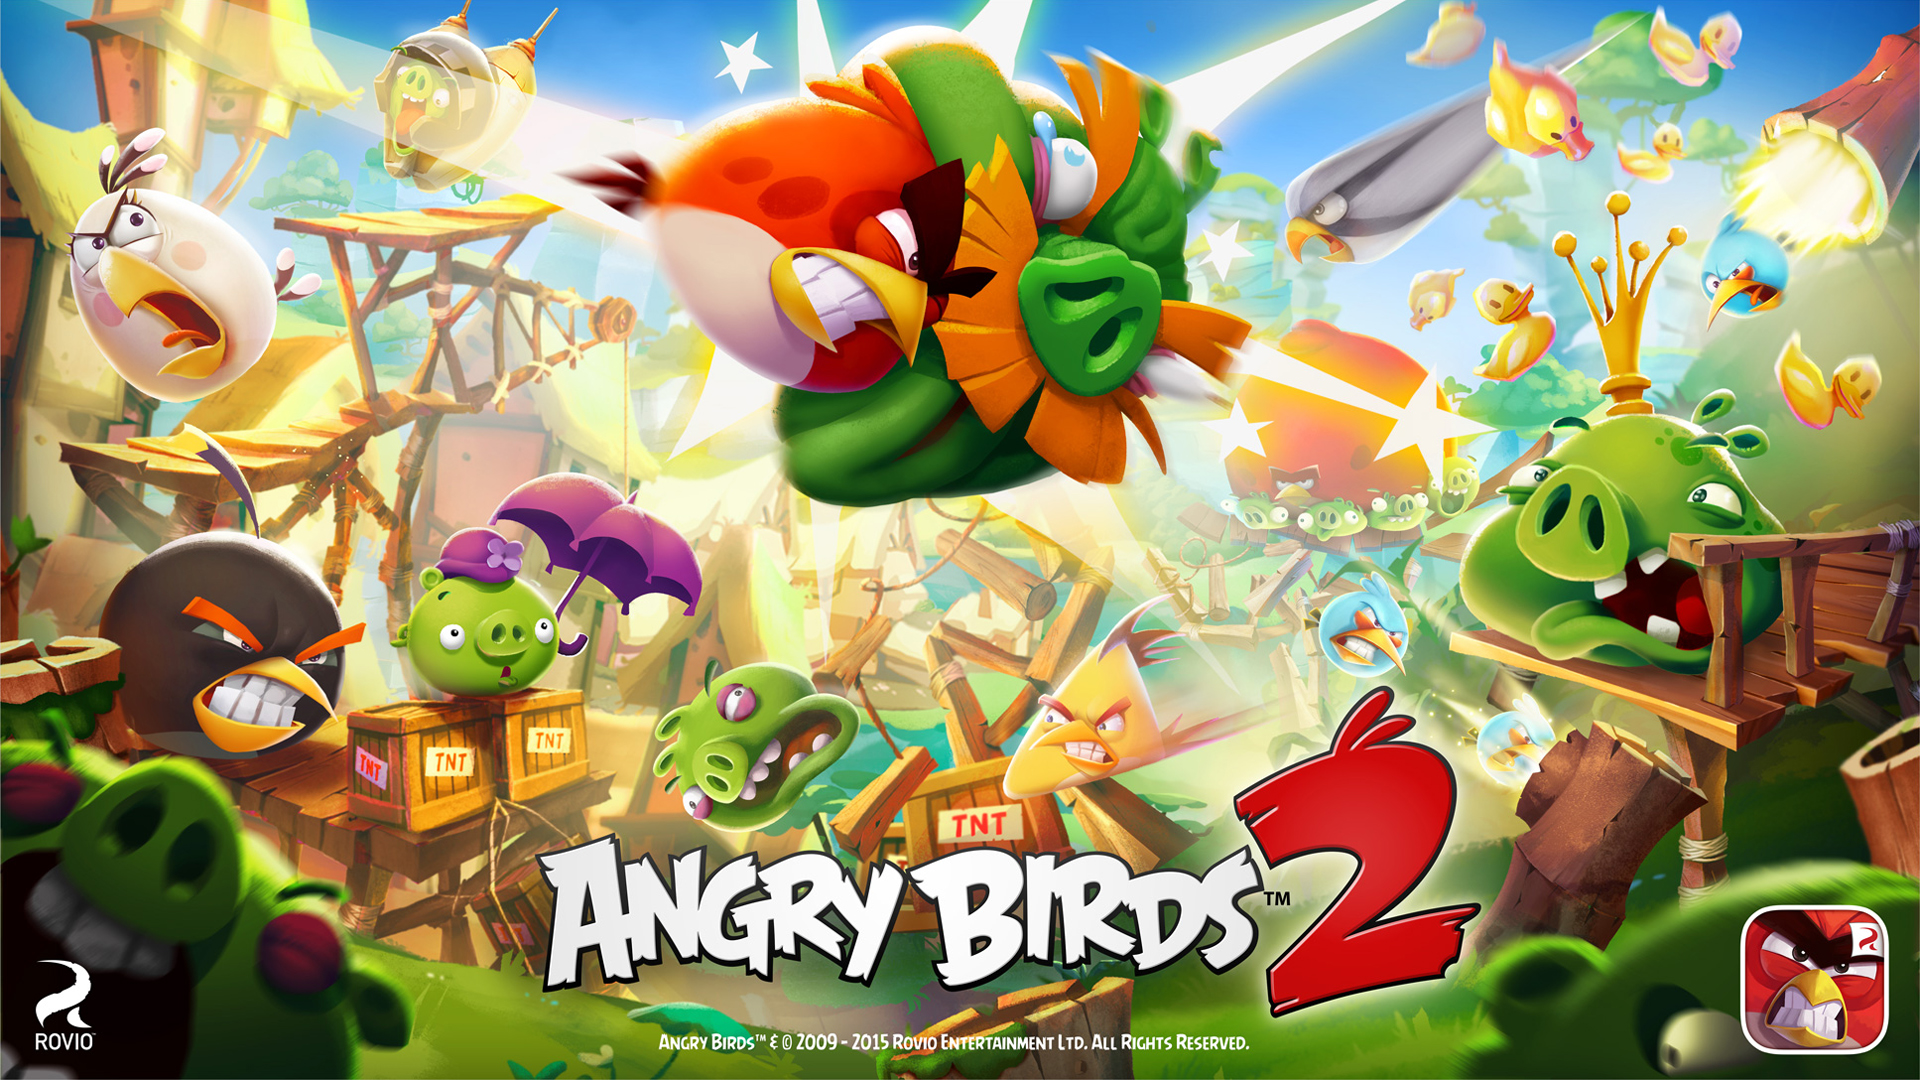 Angry Birds HD Wallpaper For IPhone Cartoons Wallpapers 1920x1080